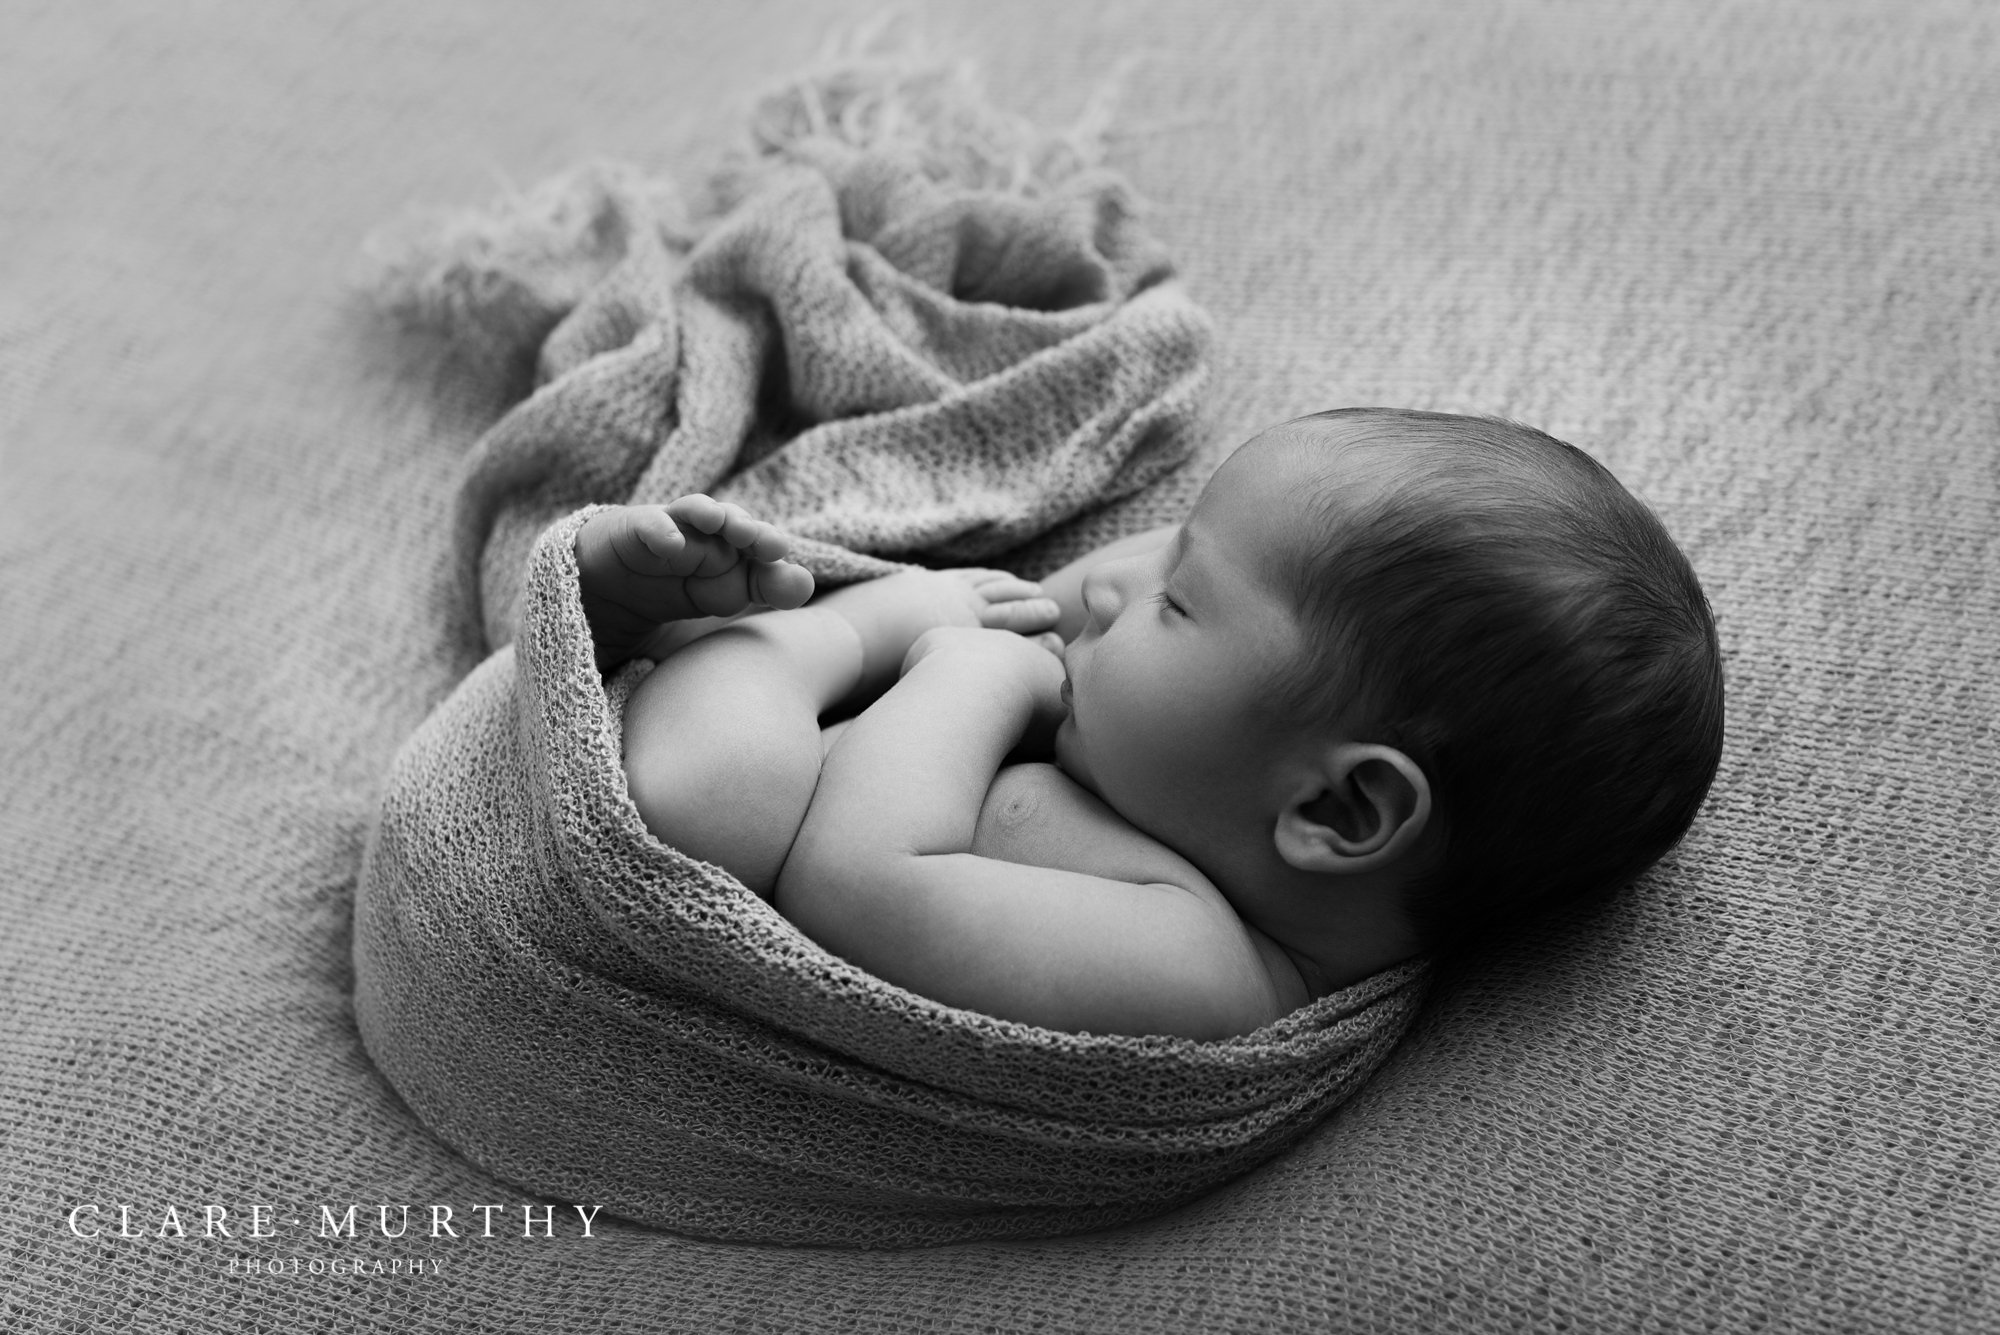 Wrapped up baby at newborn photo shoot in London